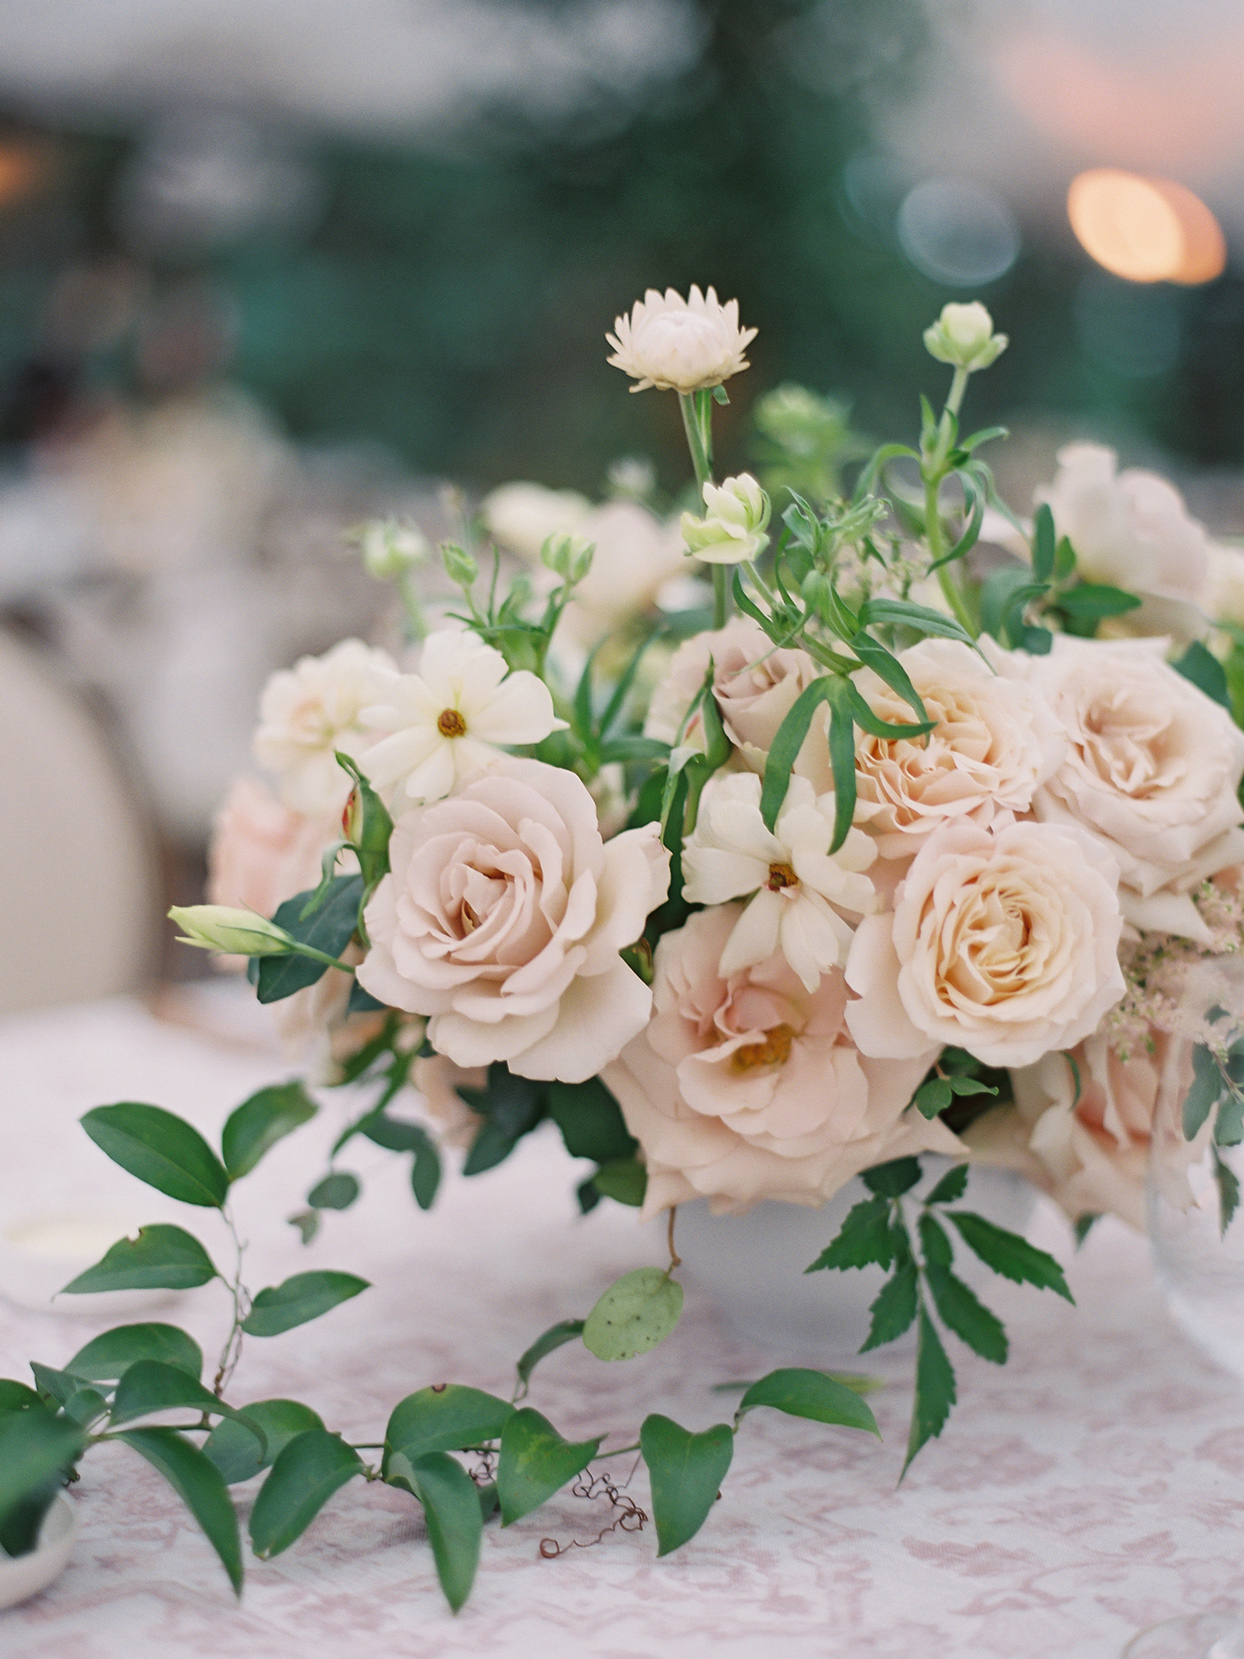 Centerpiece floral arrangements in complex neutrals